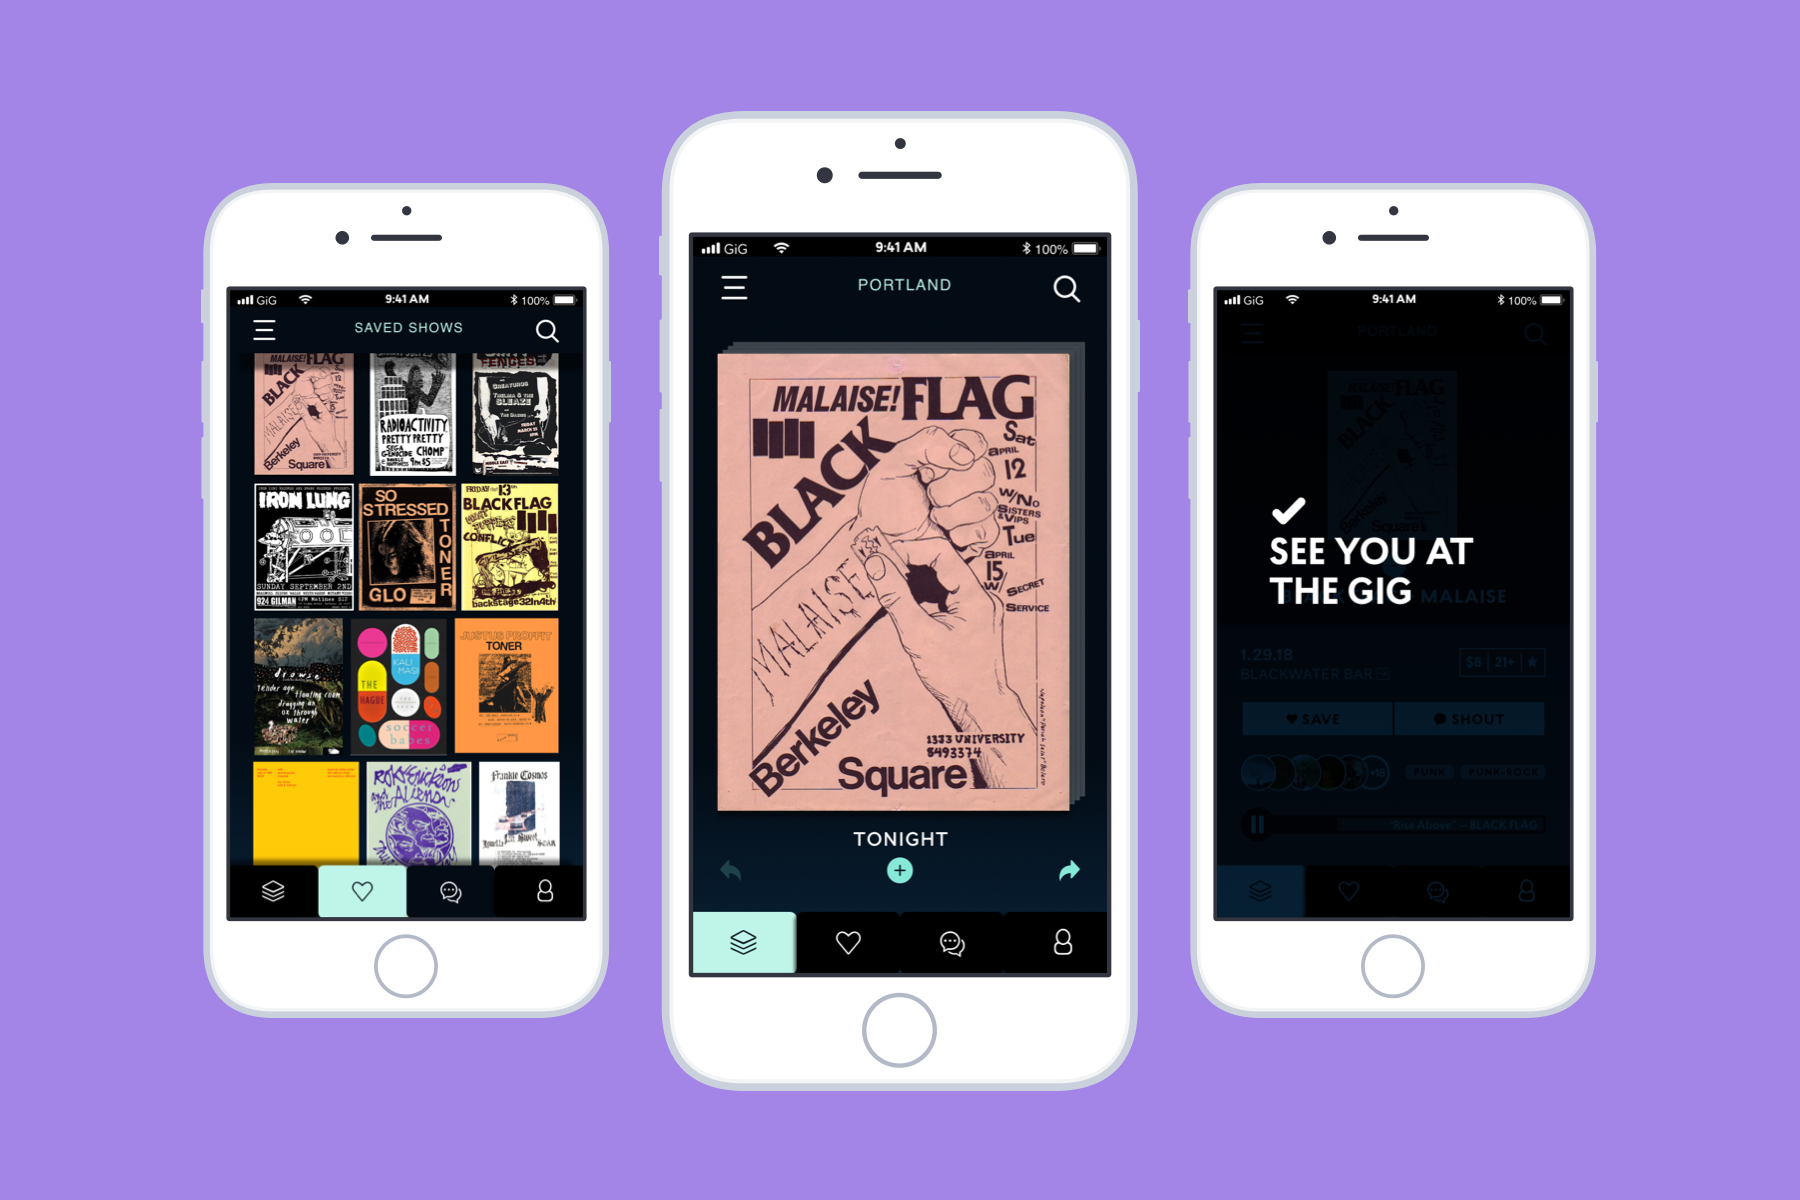 Designed around her frustration of using Facebook for learning about music shows, Laken Wright's app GIG allows users to learn and interact with upcoming shows while still preserving the beauty of gig posters.